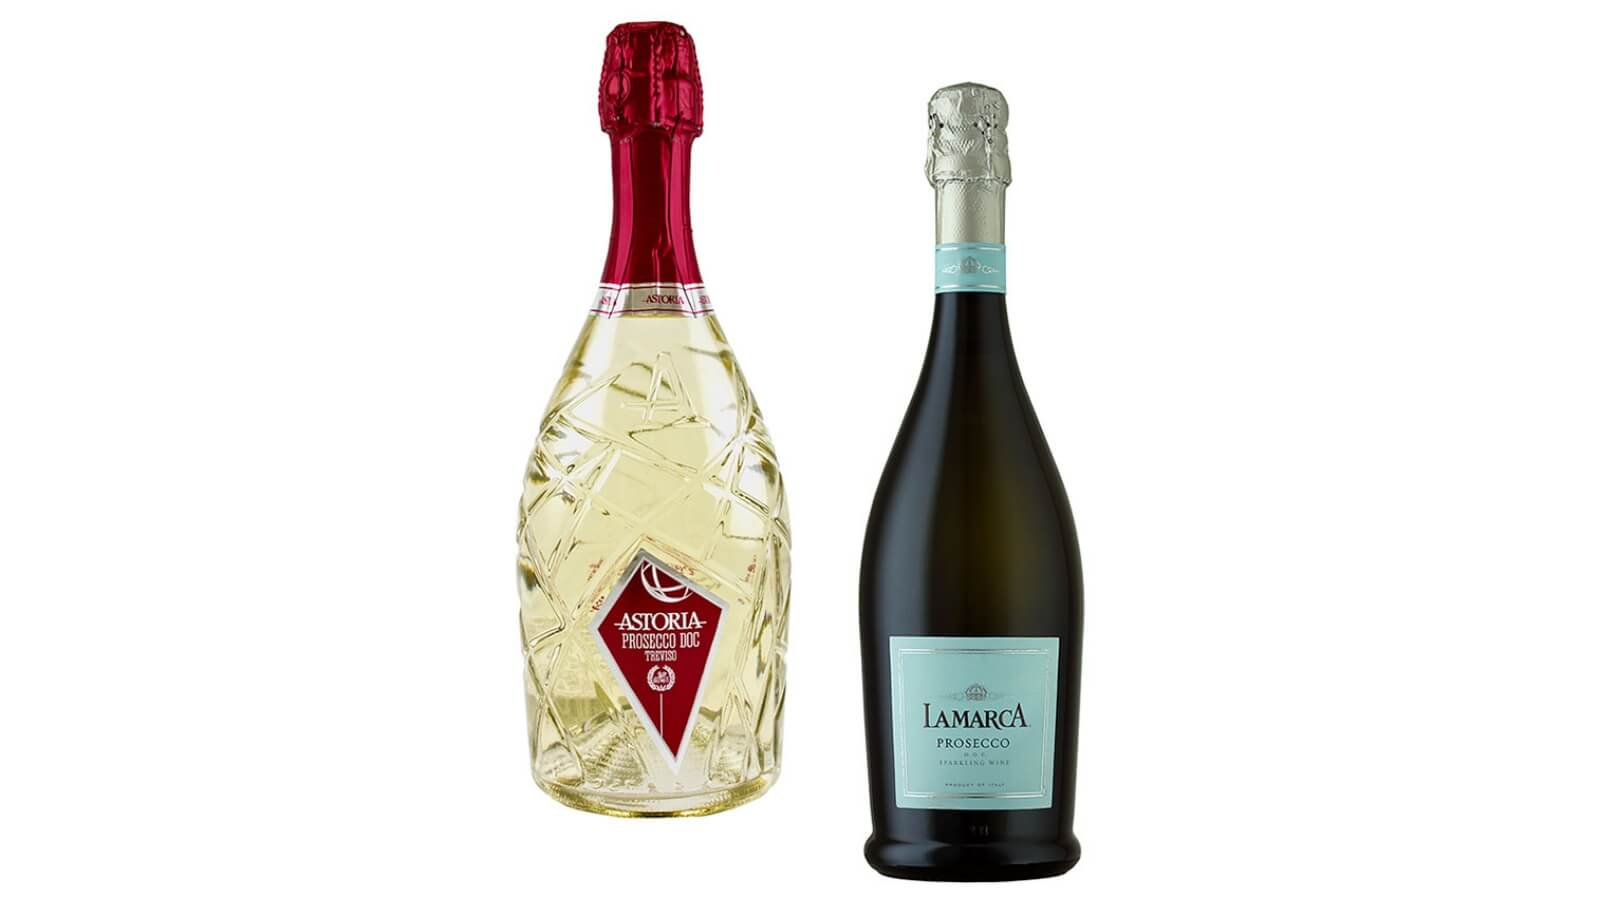 prosecco-wine-bottles